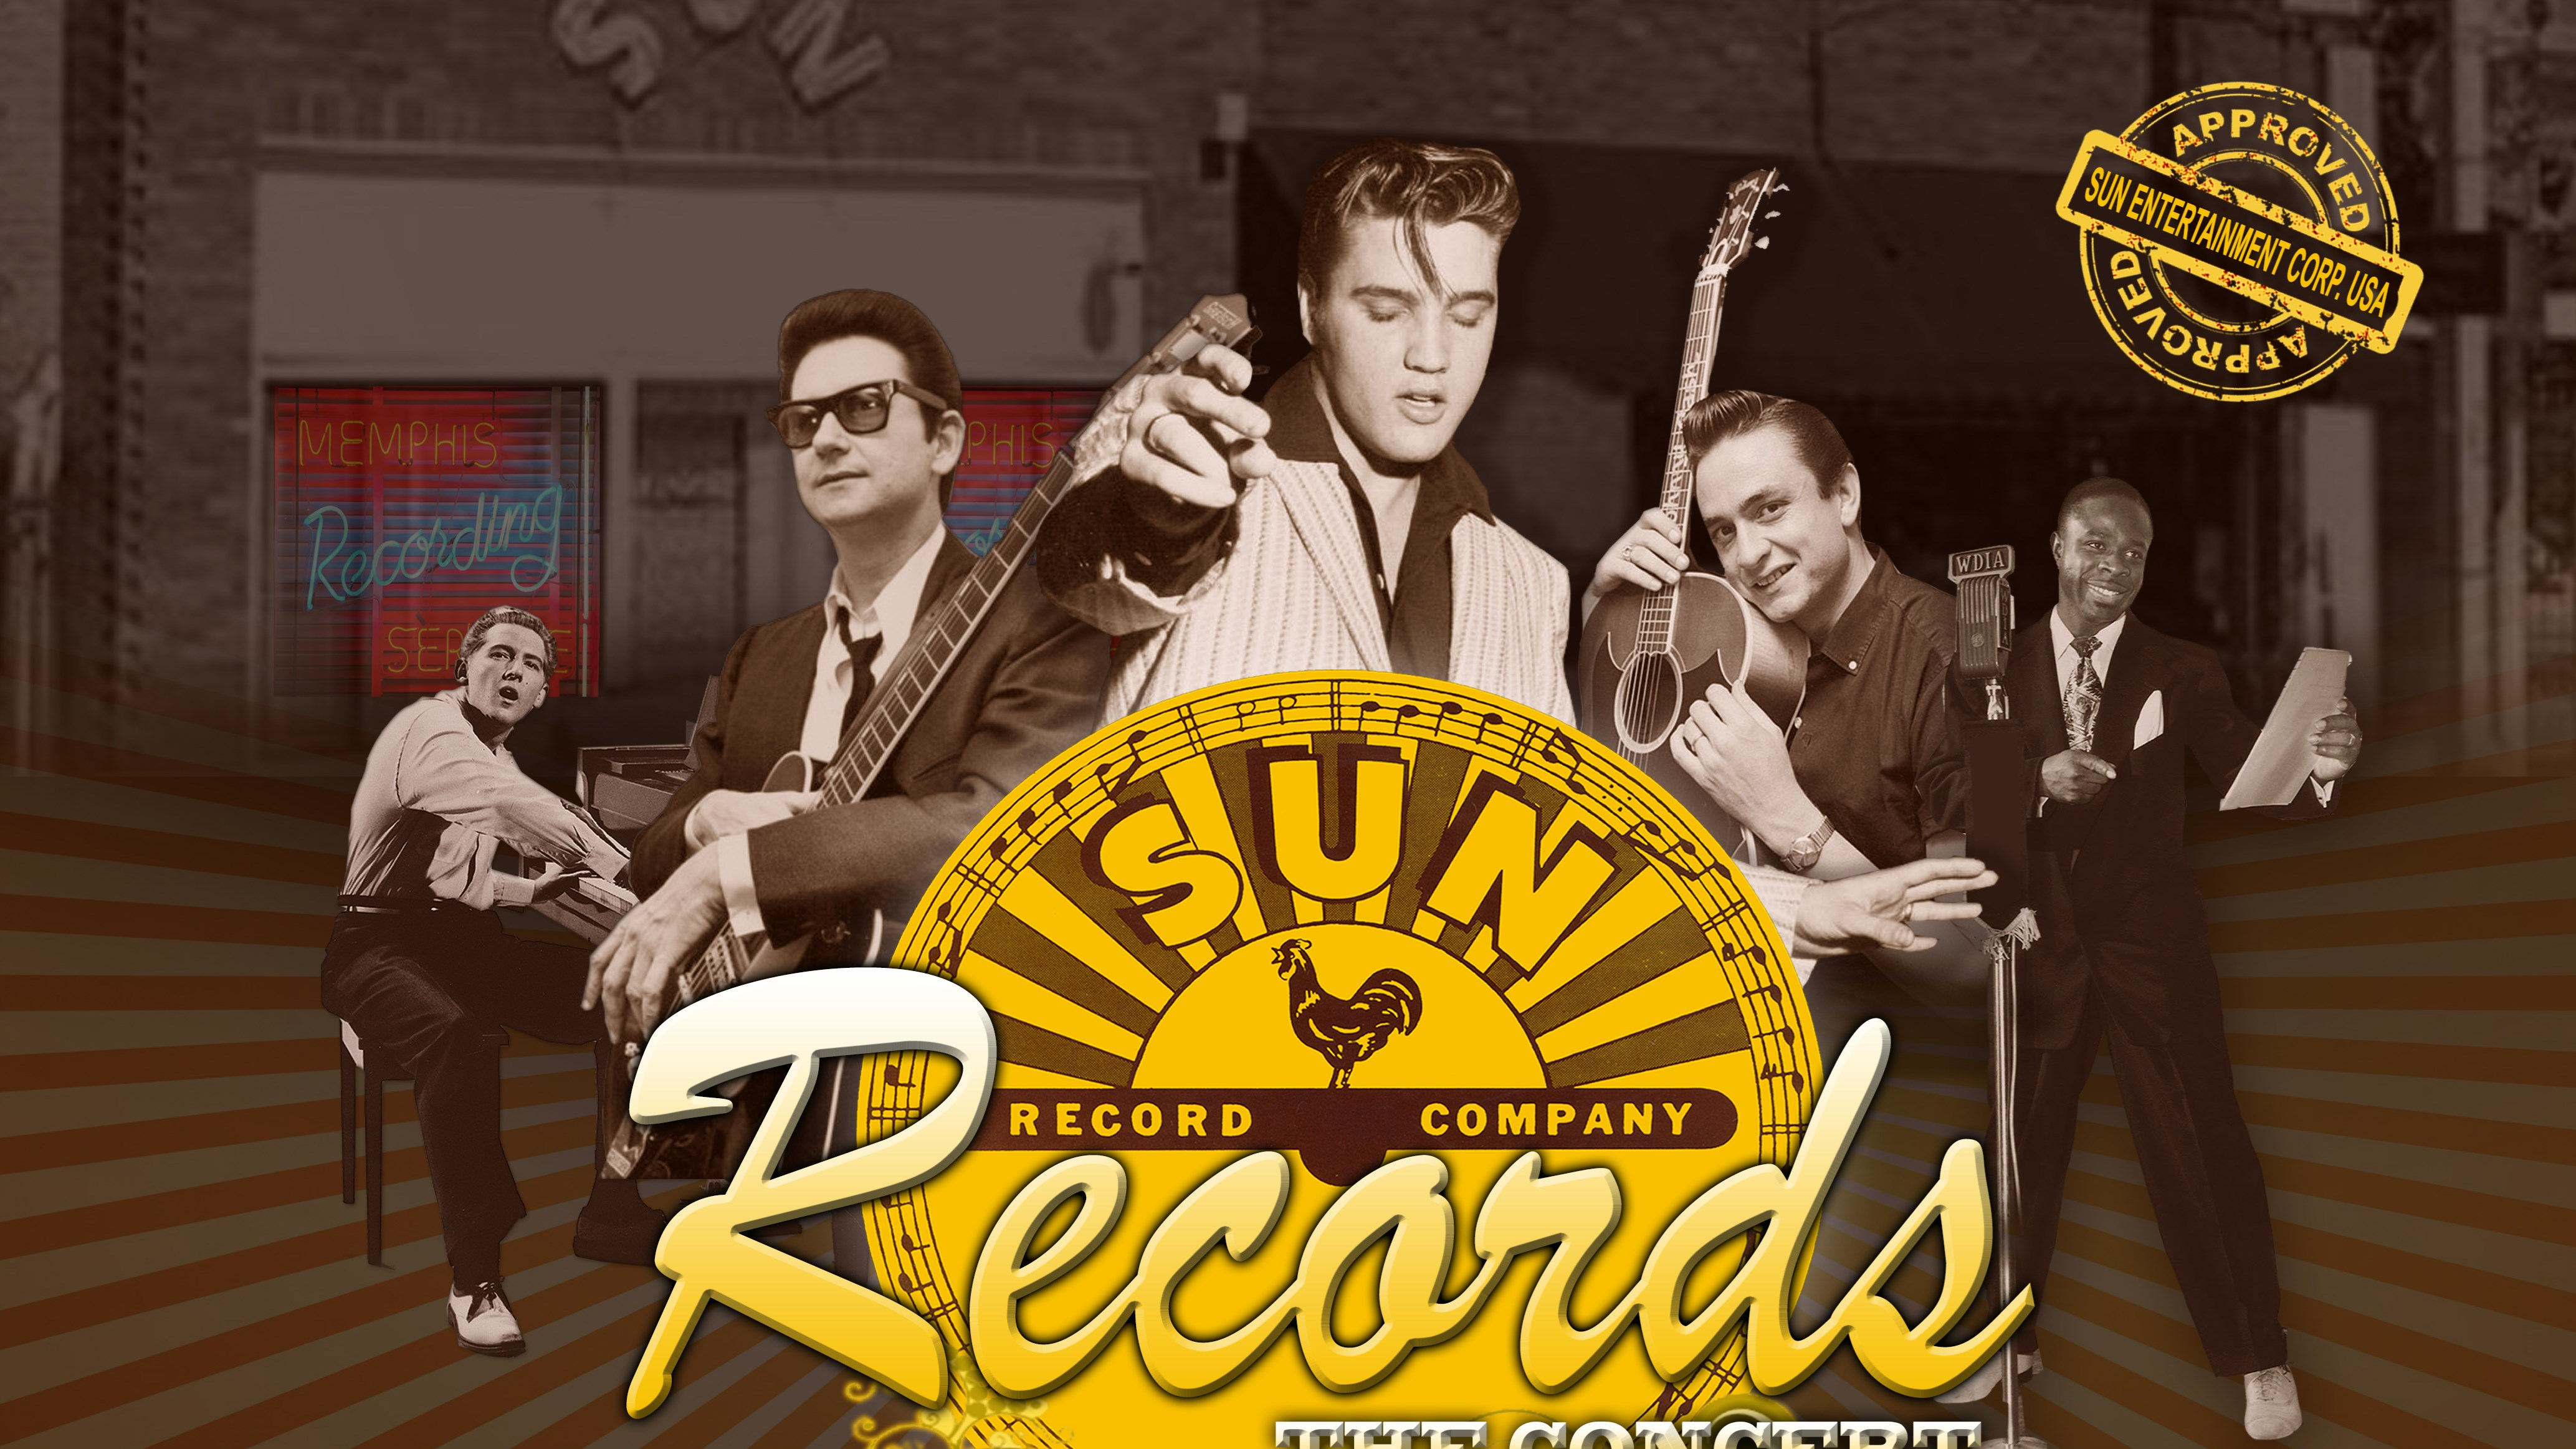 Sun Records - The Concert - (fotograaf onbekend) - liggend.jpg